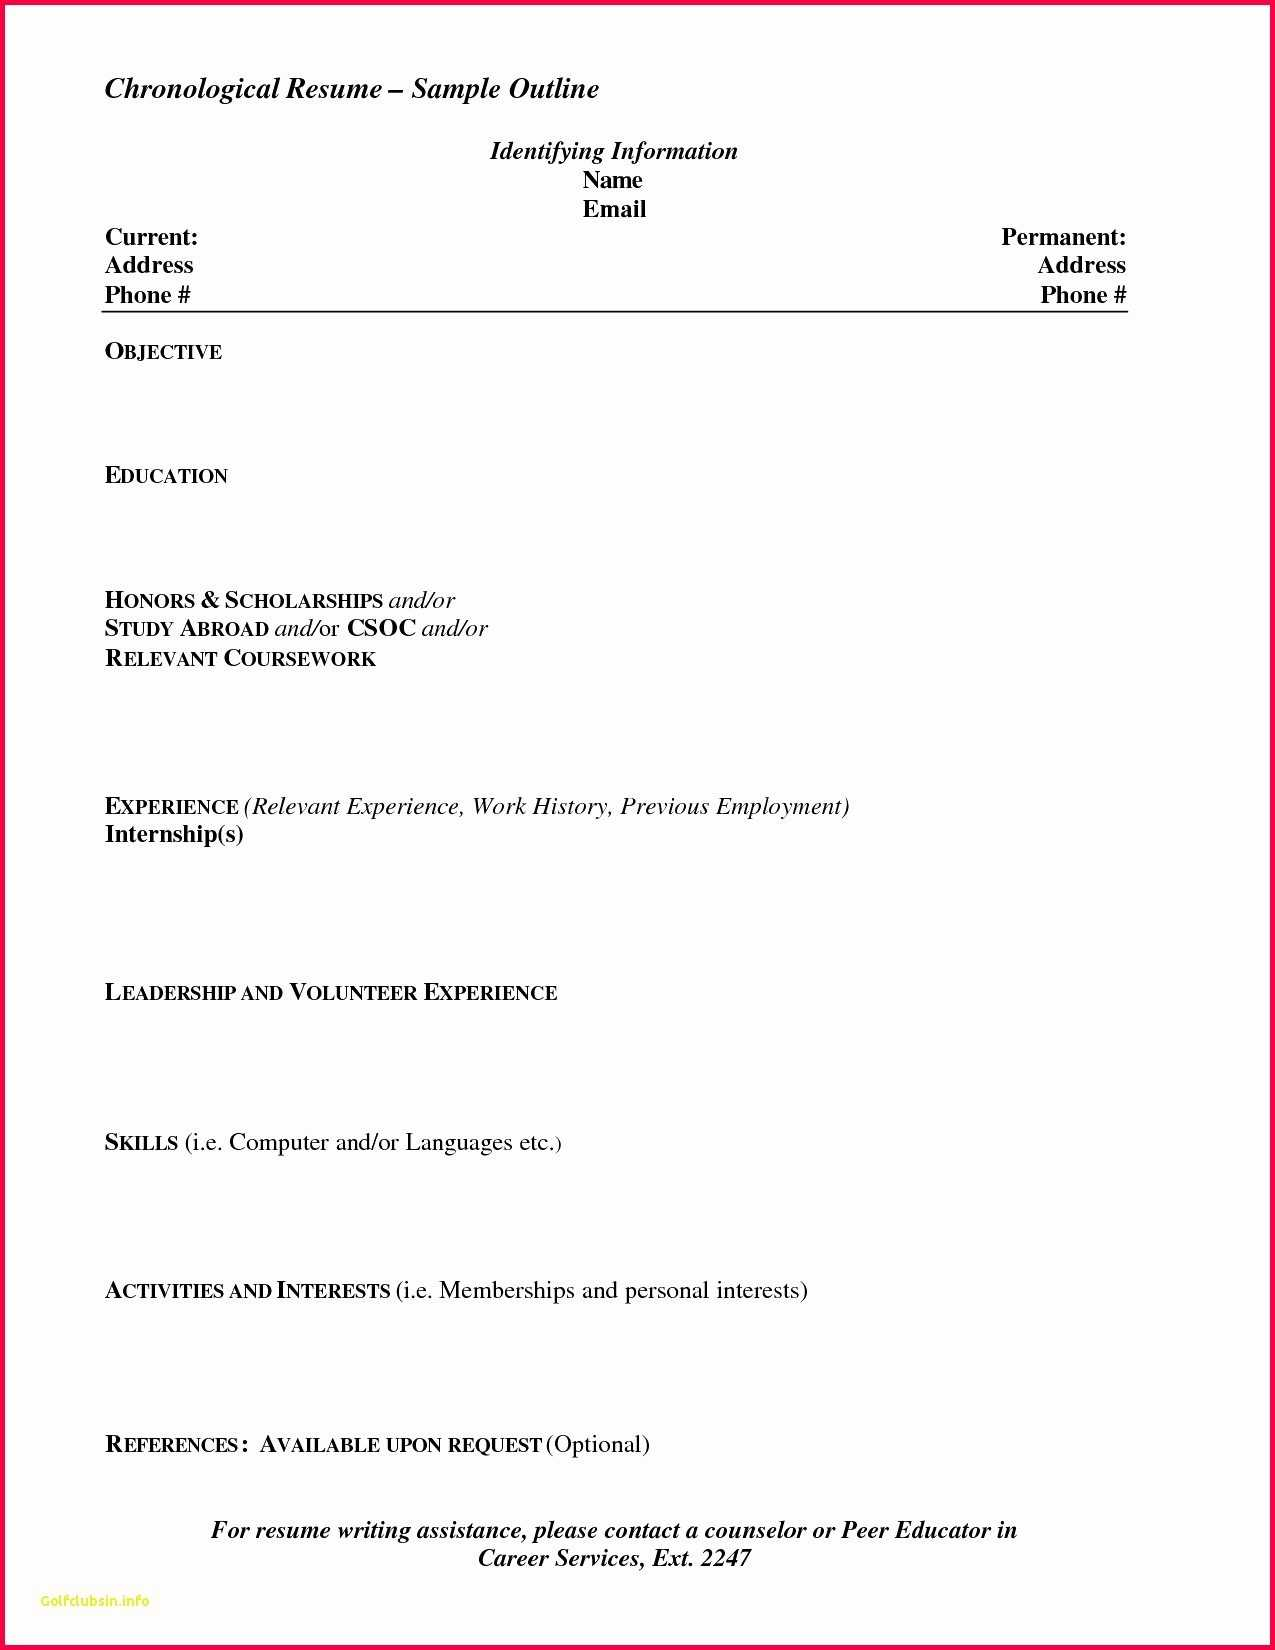 Fill In the Blank Resume Worksheet Also Printable Resume Worksheet Myacereporter Myacereporter